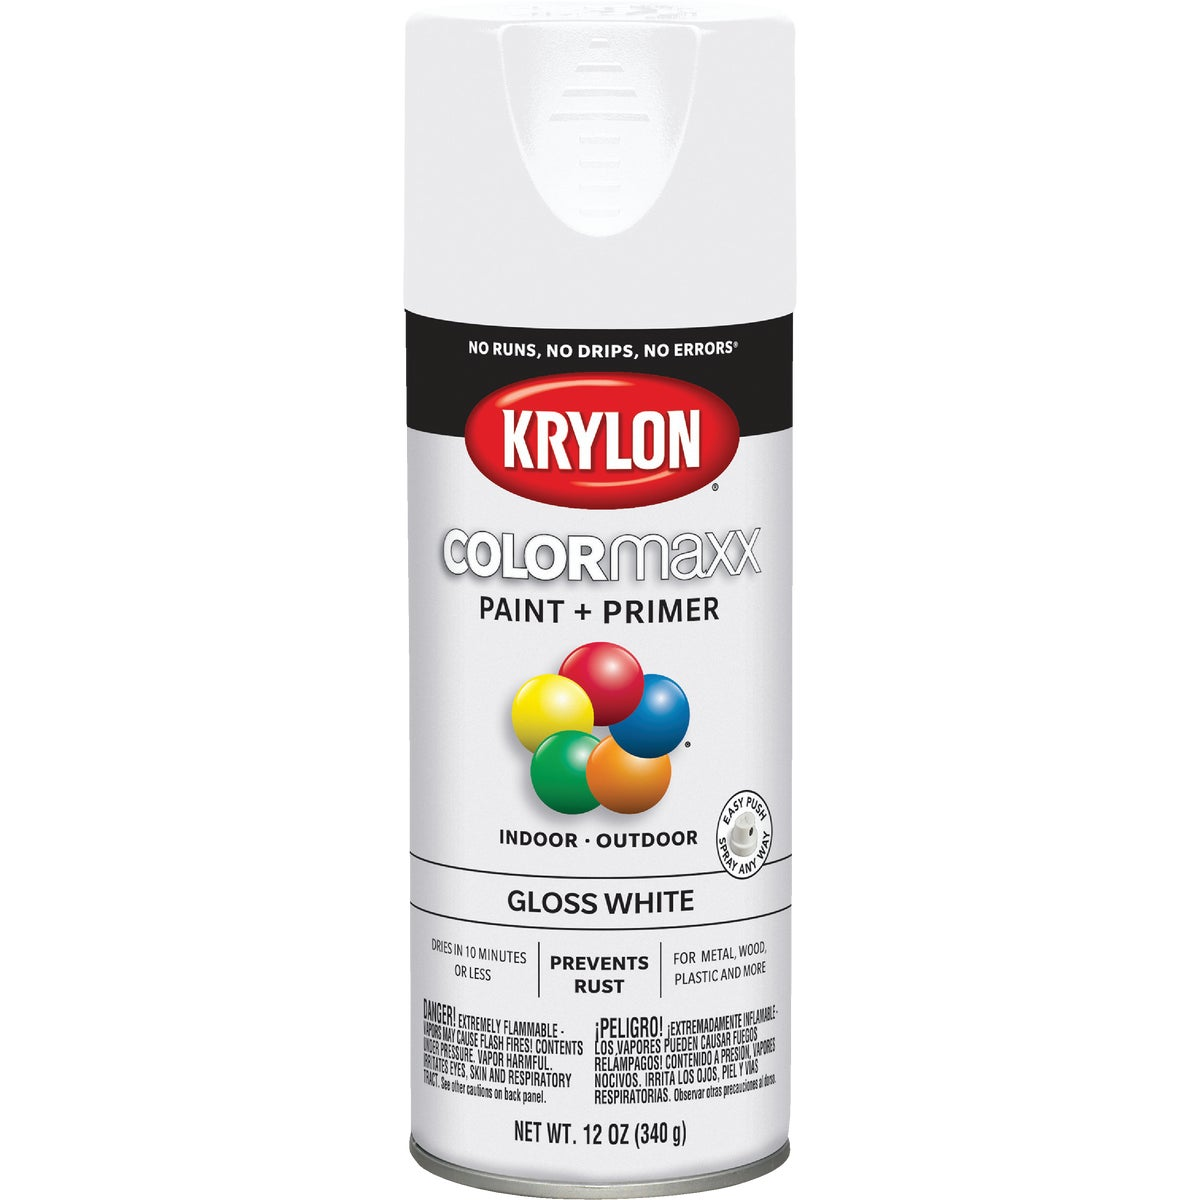 GLOSS WHITE SPRAY PAINT - 51501 by Krylon/consumer Div